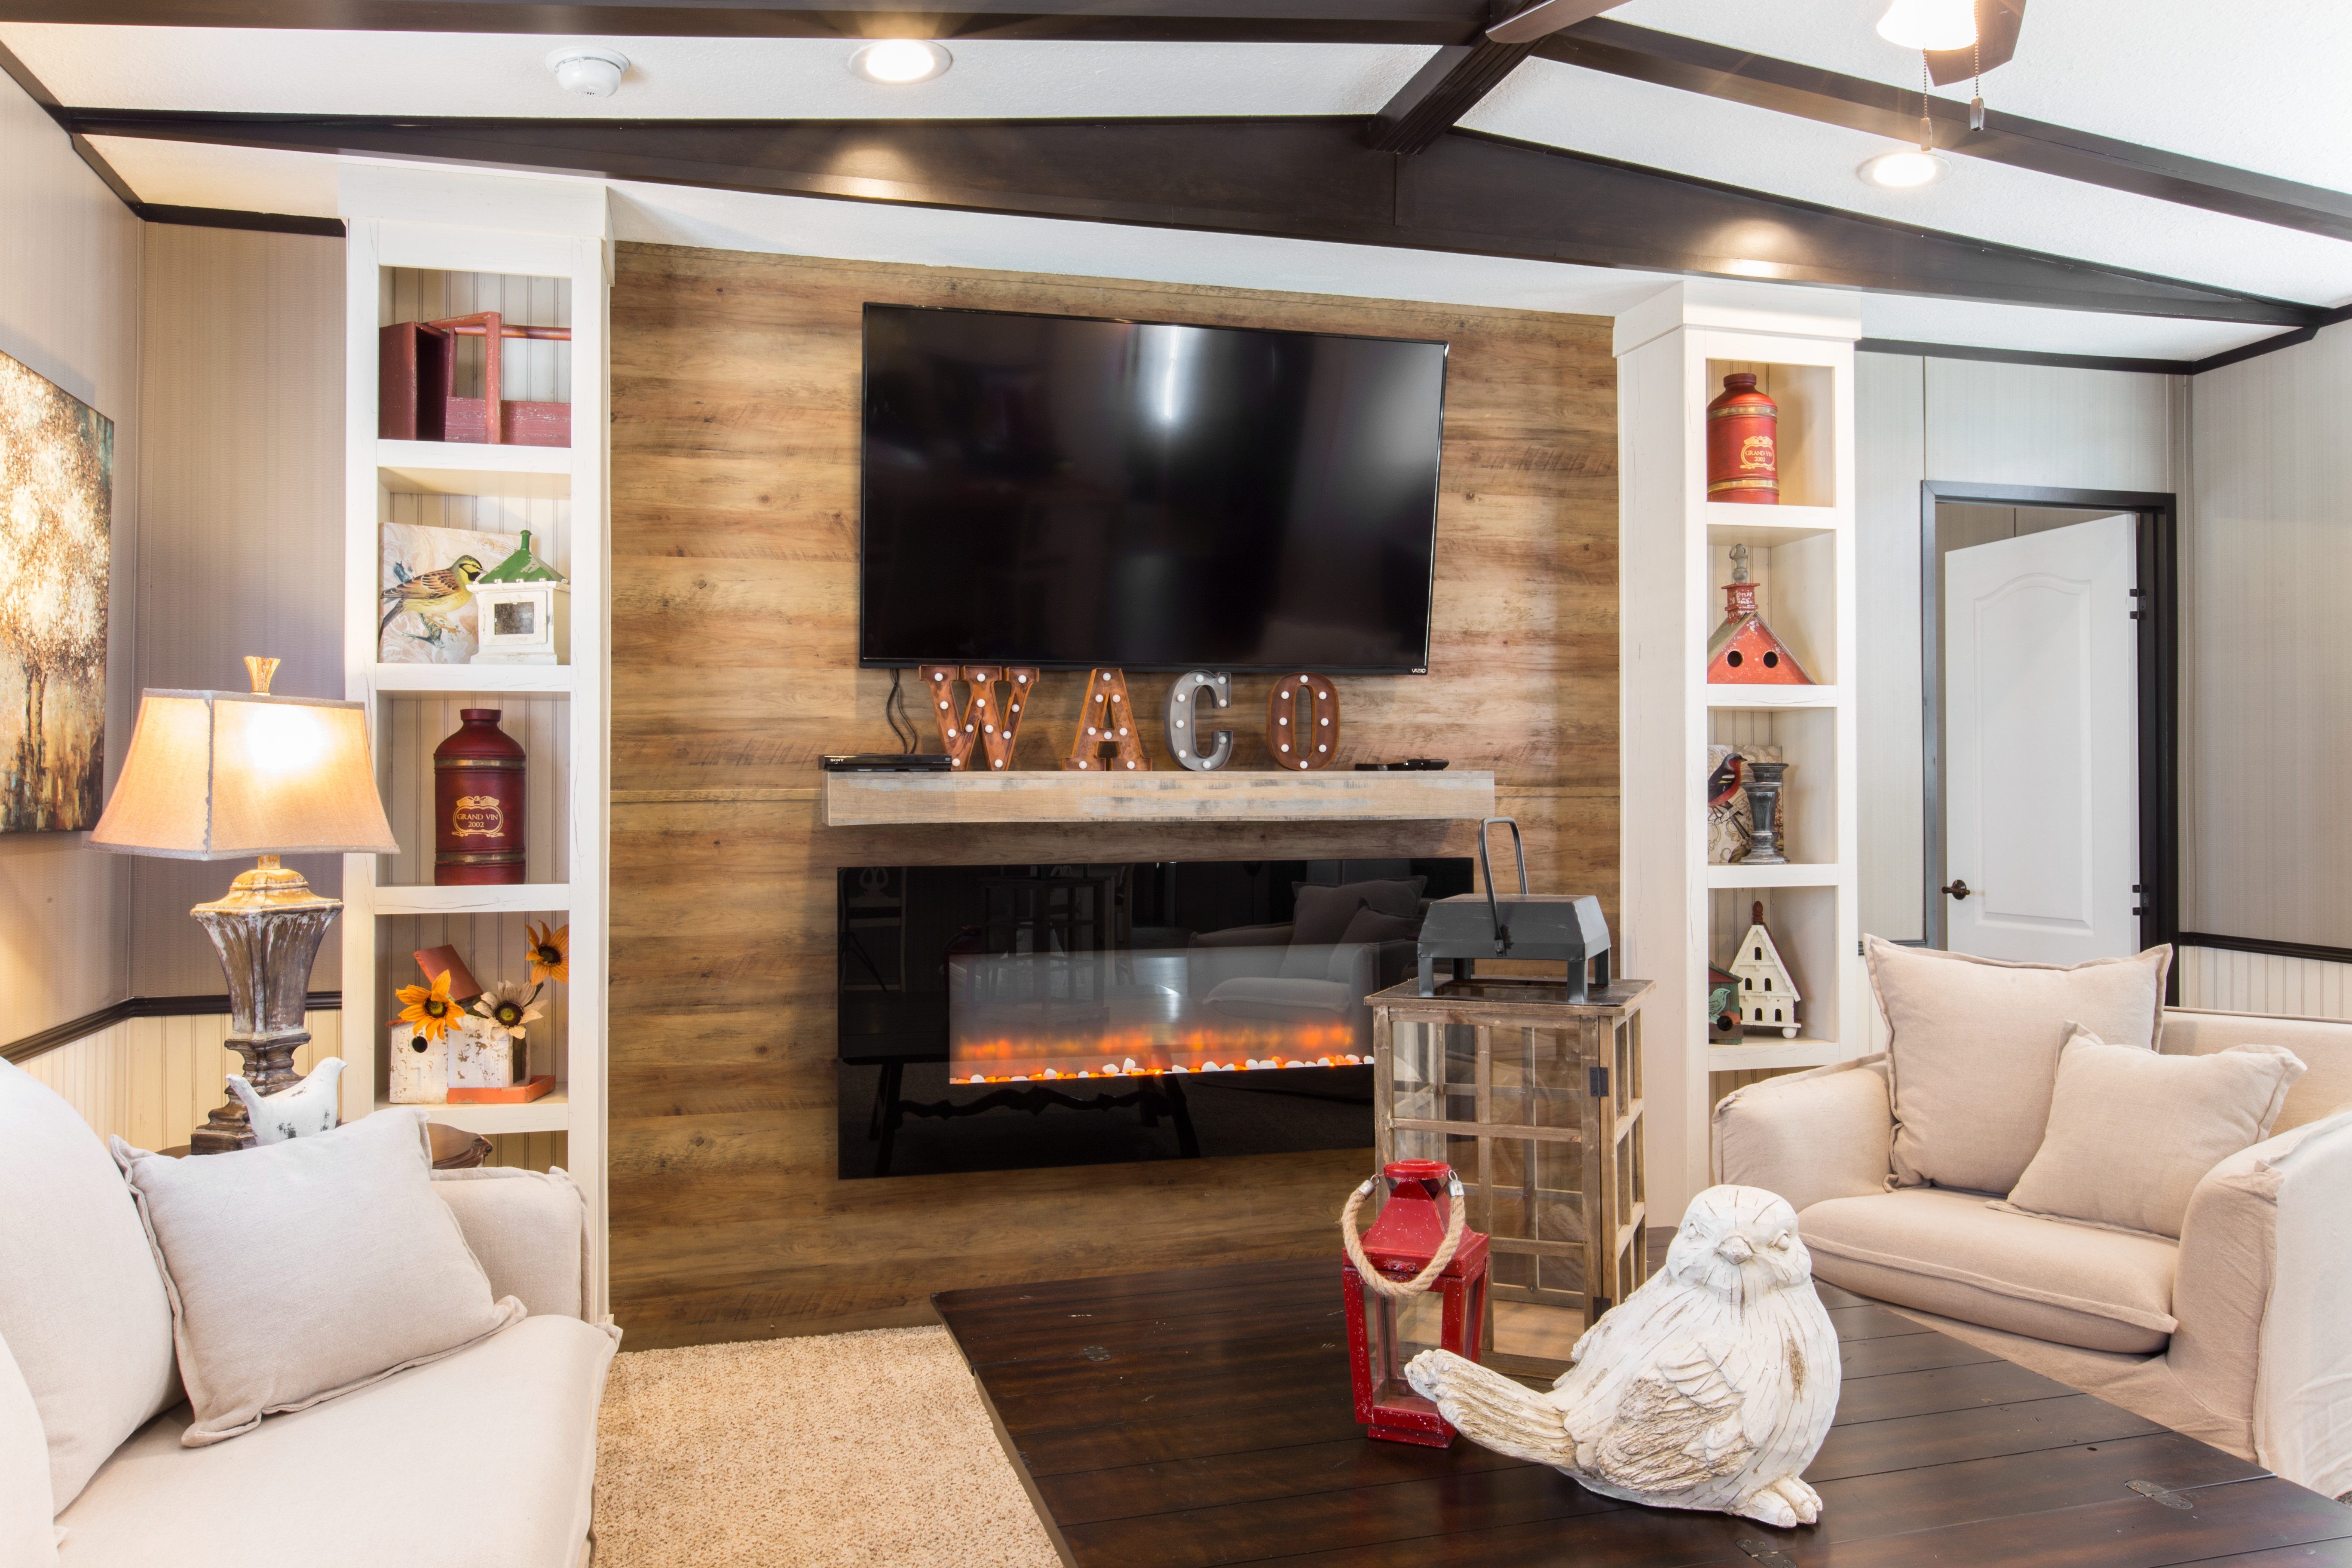 Top 10 rustic decor ideas for your home clayton blog for Home ideas centre clayton